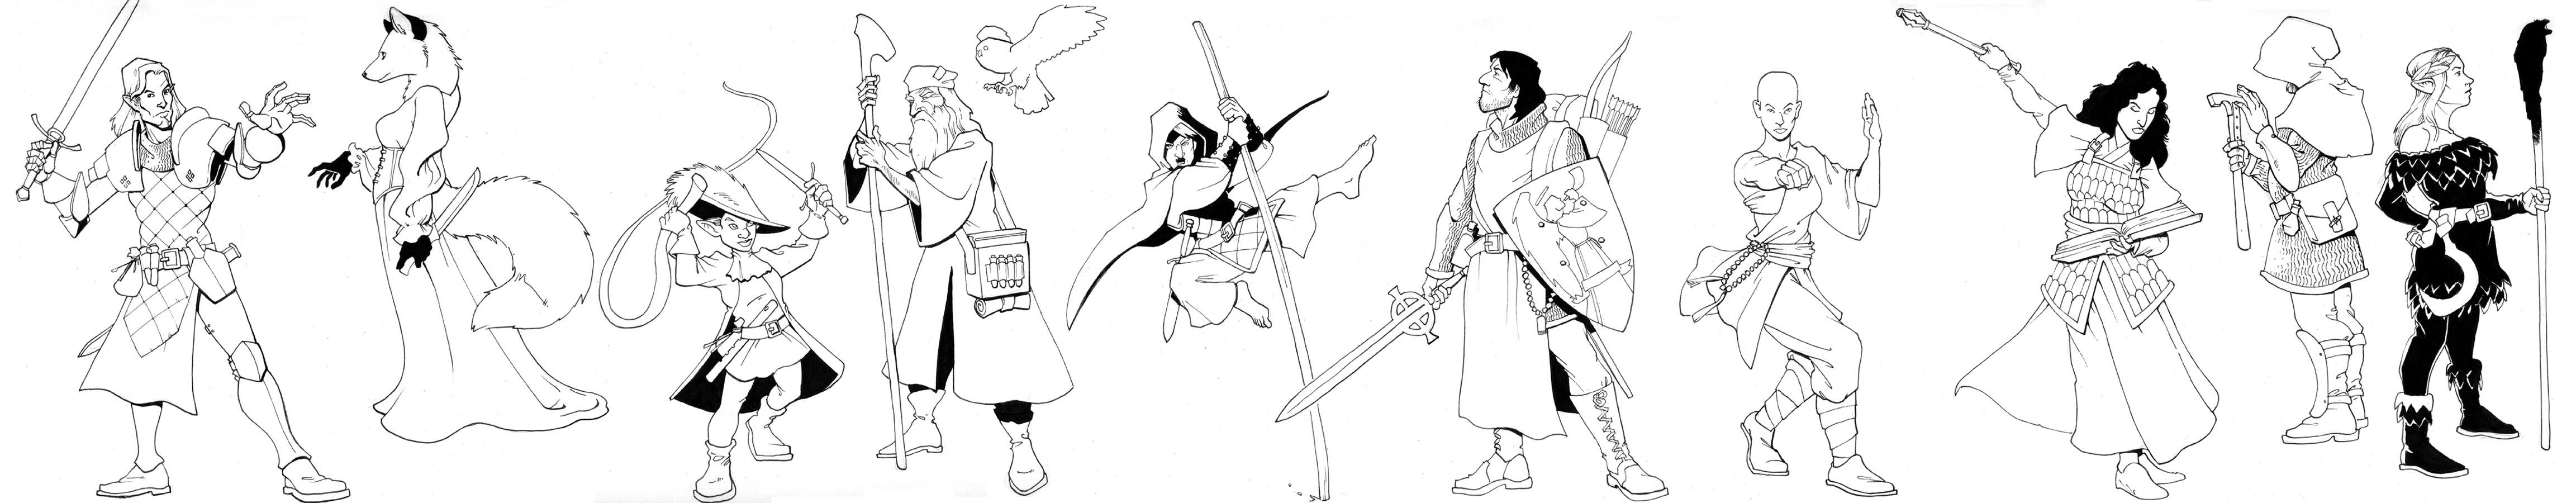 0803 DnD/Pathfinder sketches by Pachycrocuta